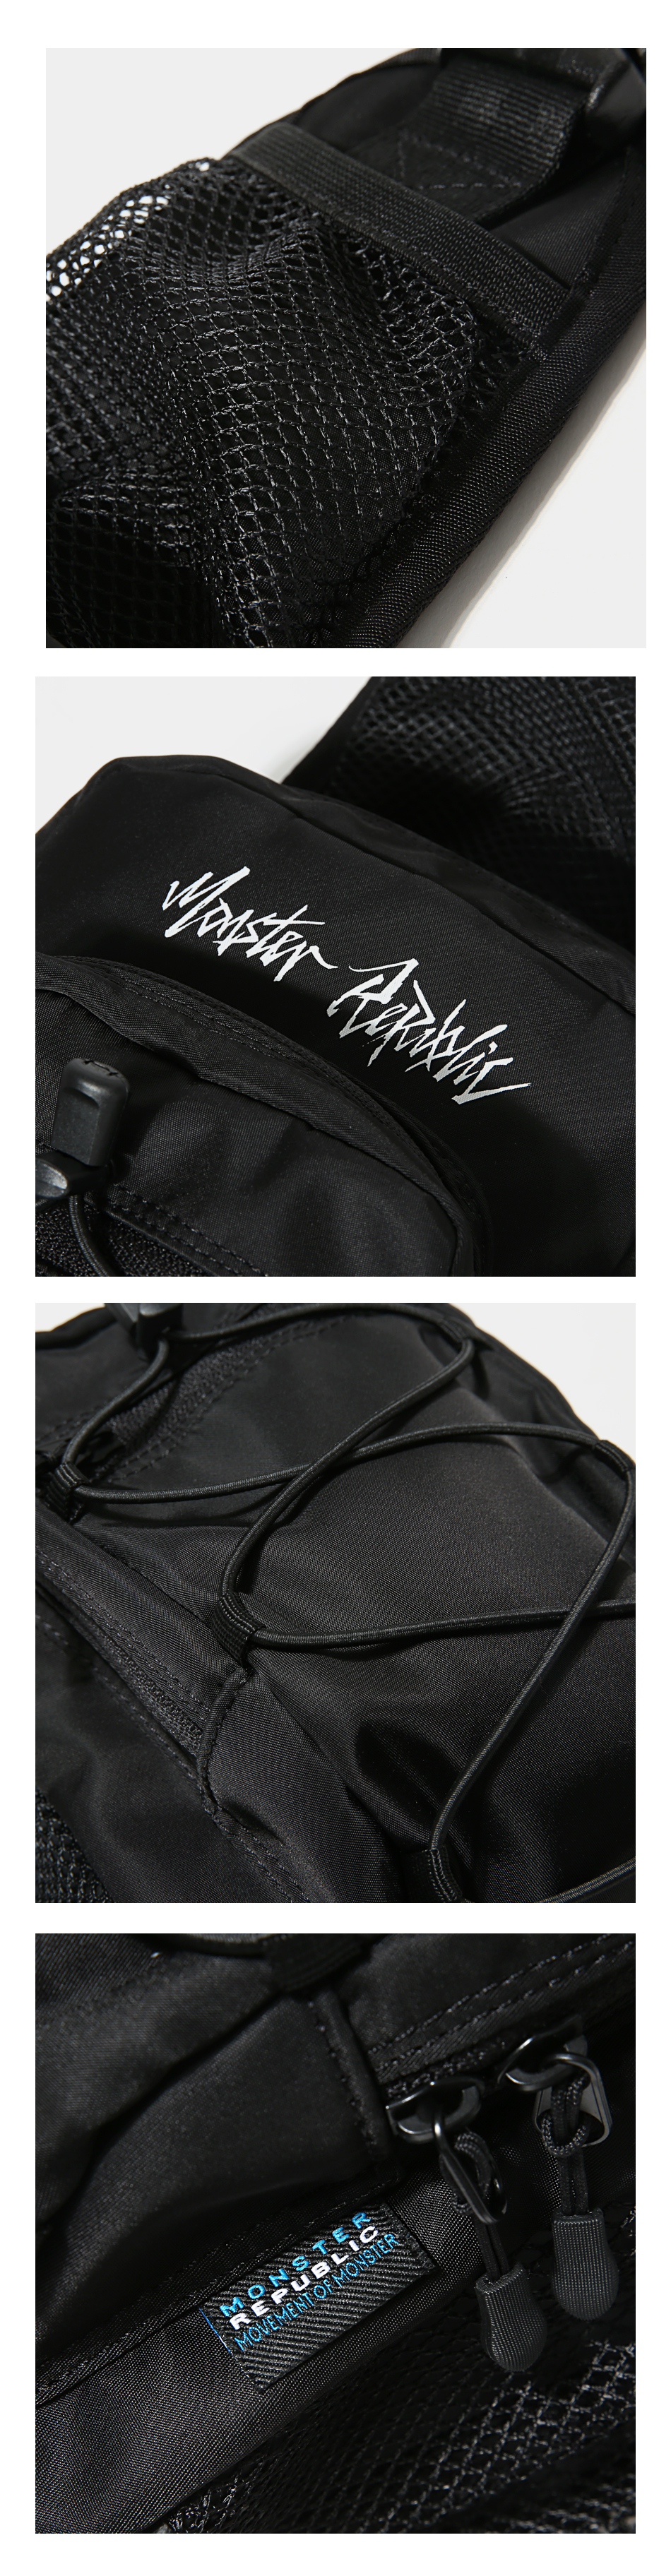 [사은품 증정] MOVEMENT LOGO SLING BAG / BLACK